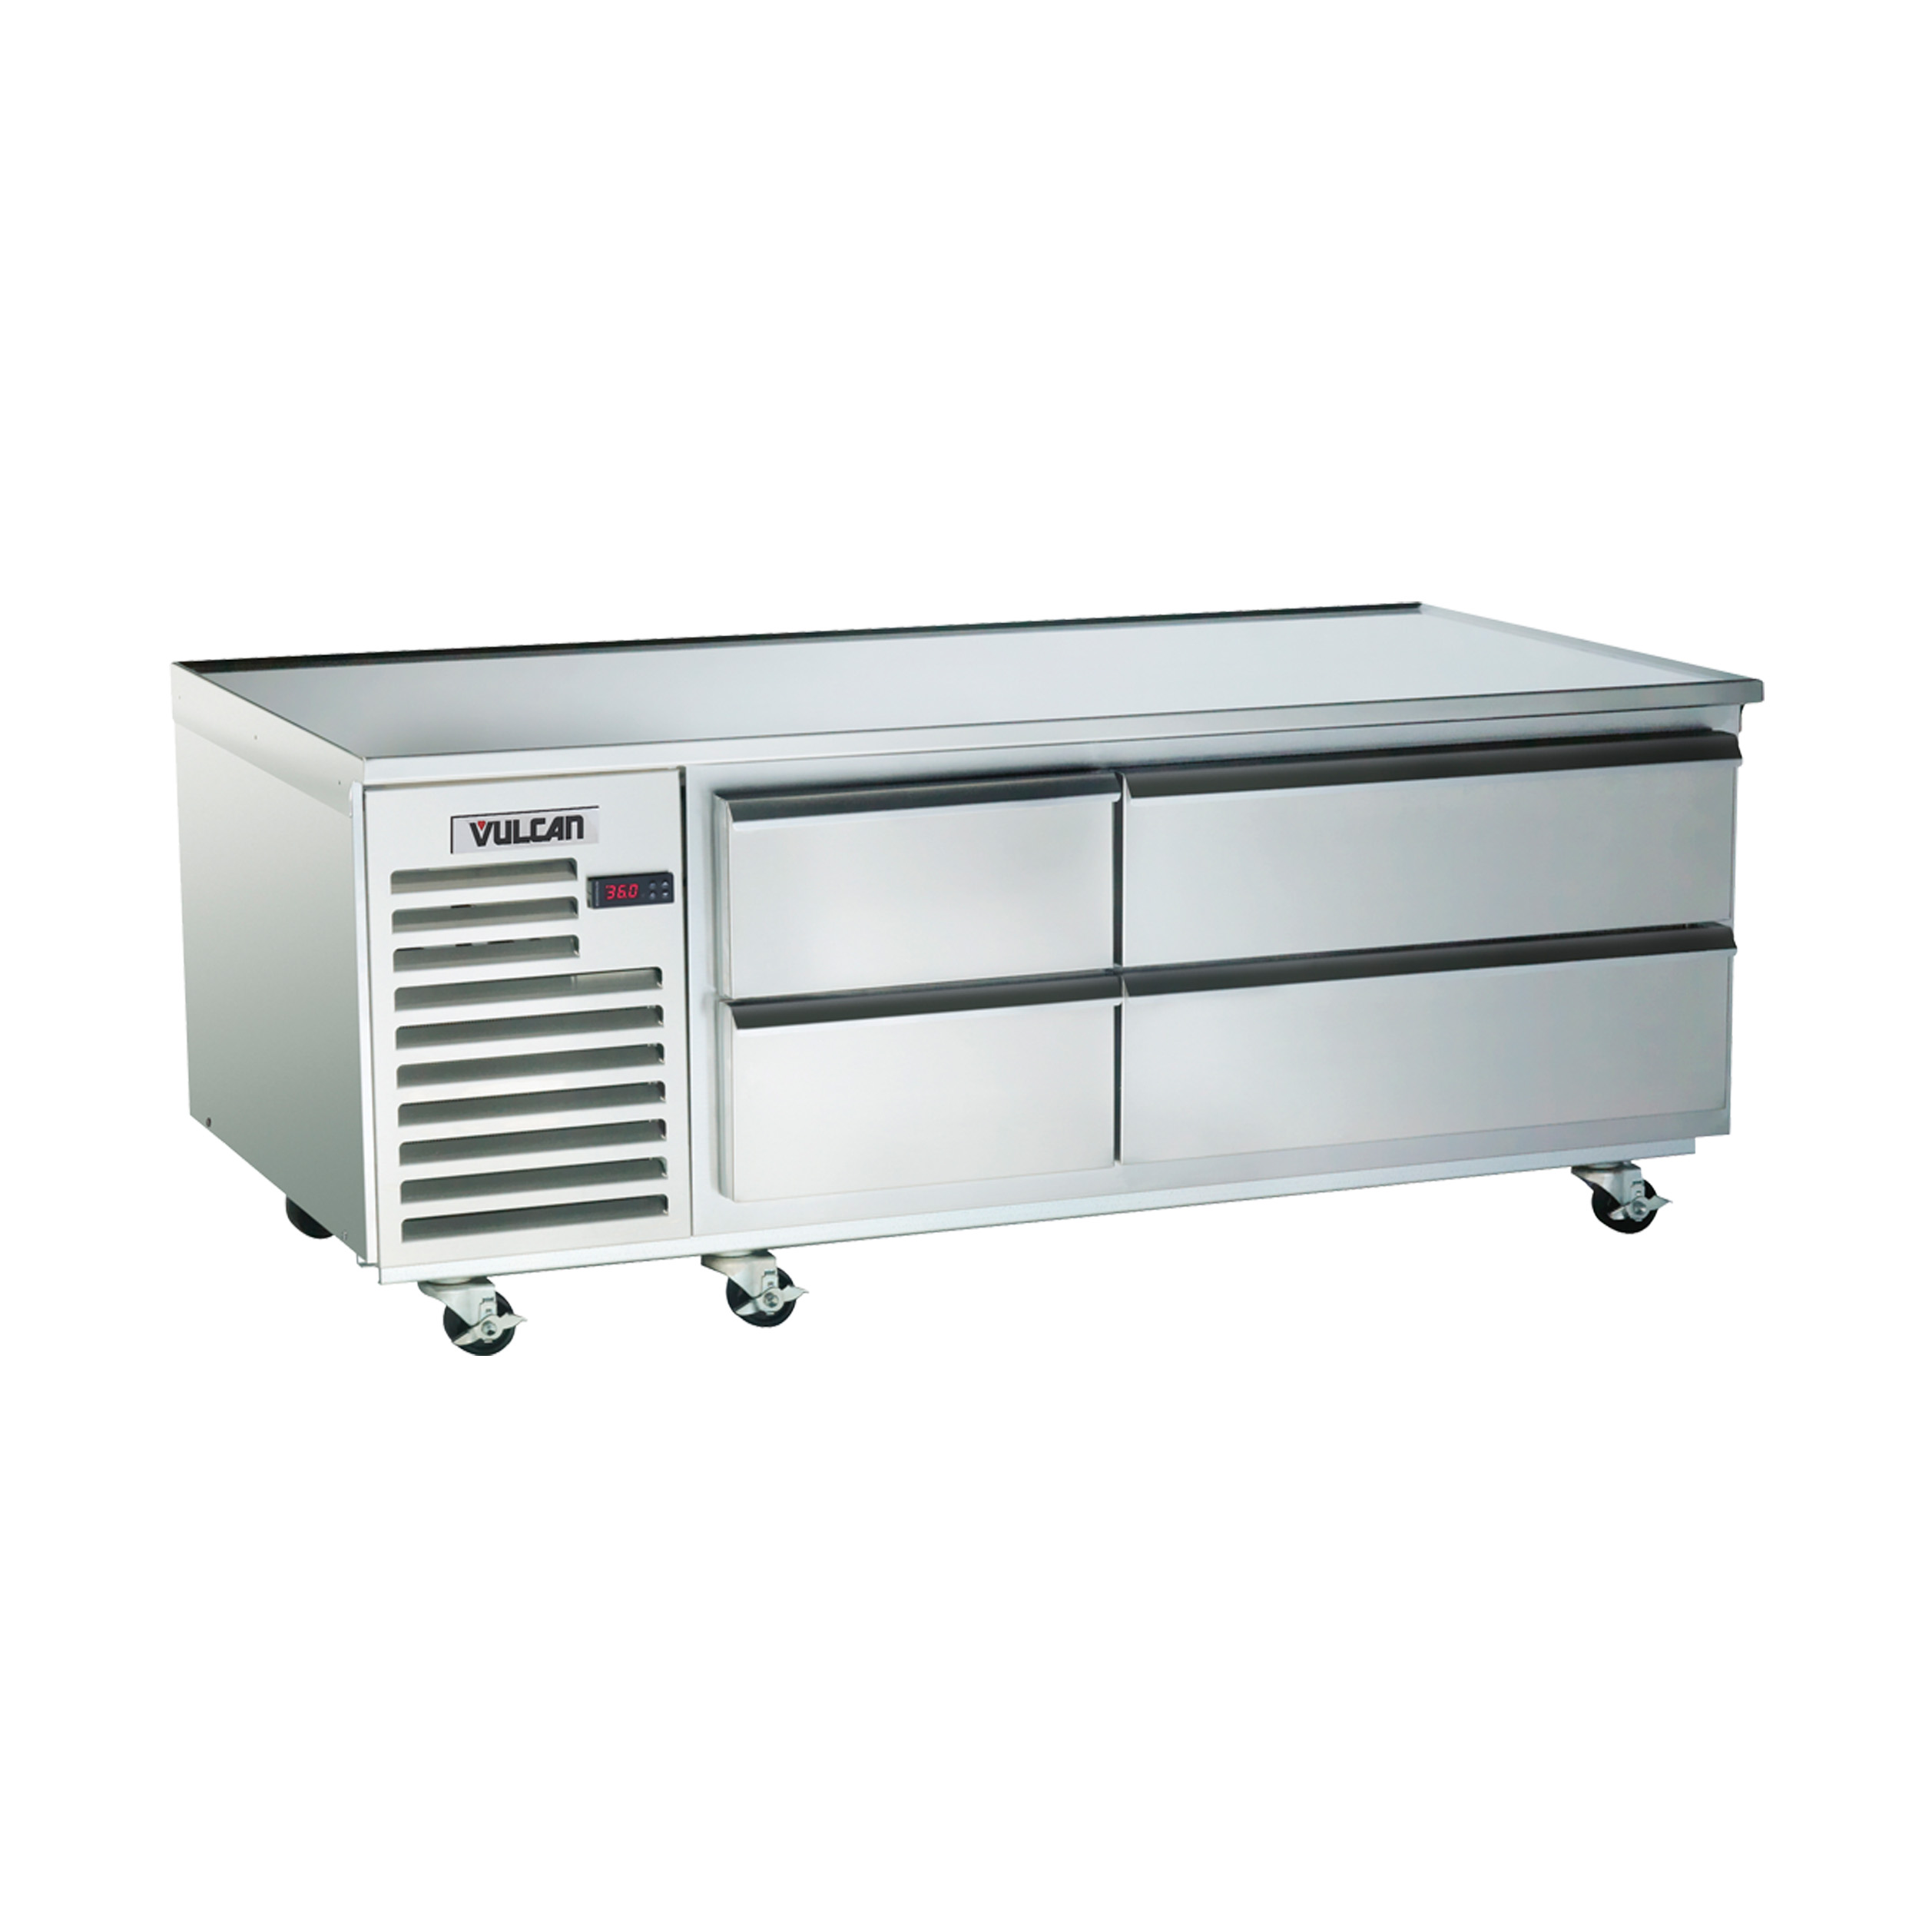 Vulcan VR72 equipment stand, refrigerated base